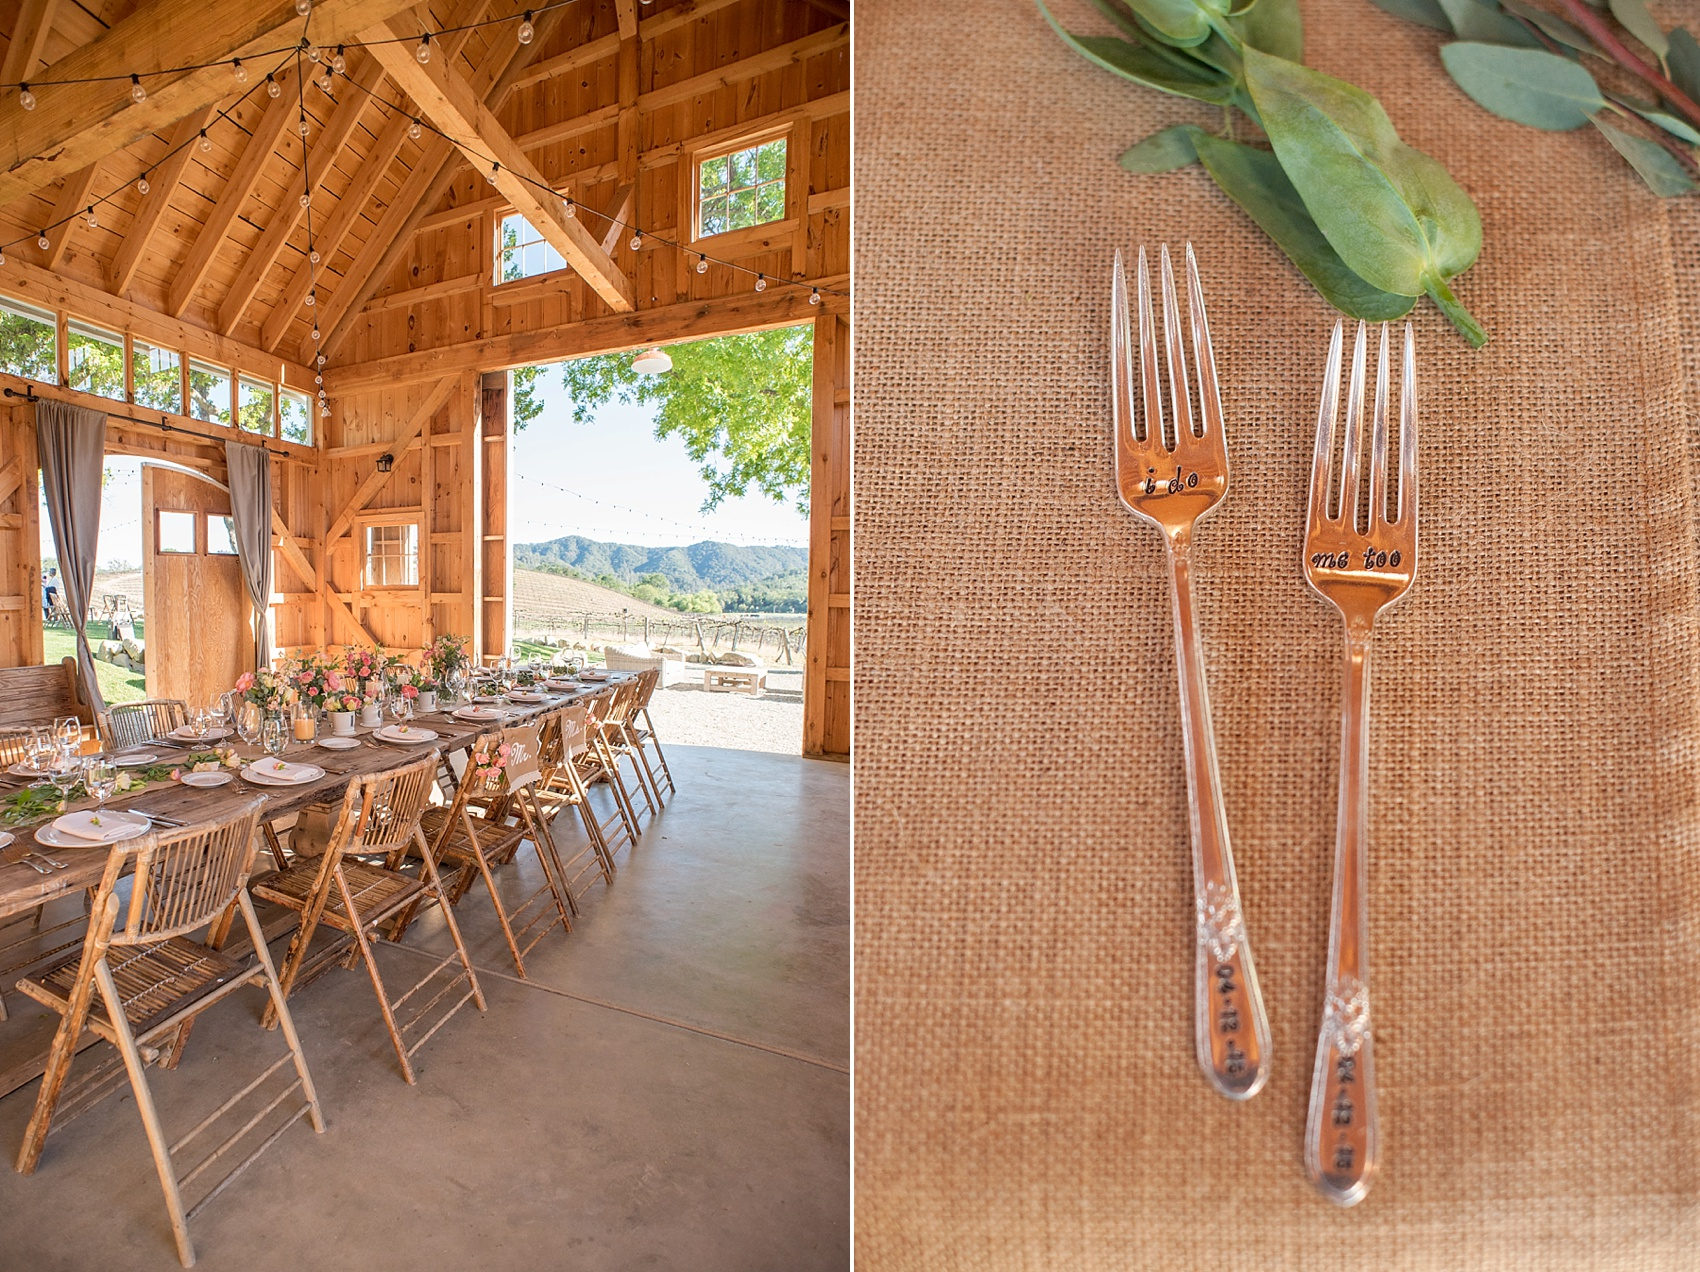 Spring vineyard elopement with pink flowers and barn reception. Custom cake forks for dessert. Photos by Mikkel Paige, destination wedding photographer. Held at HammerSky Vineyard, south of San Francisco.